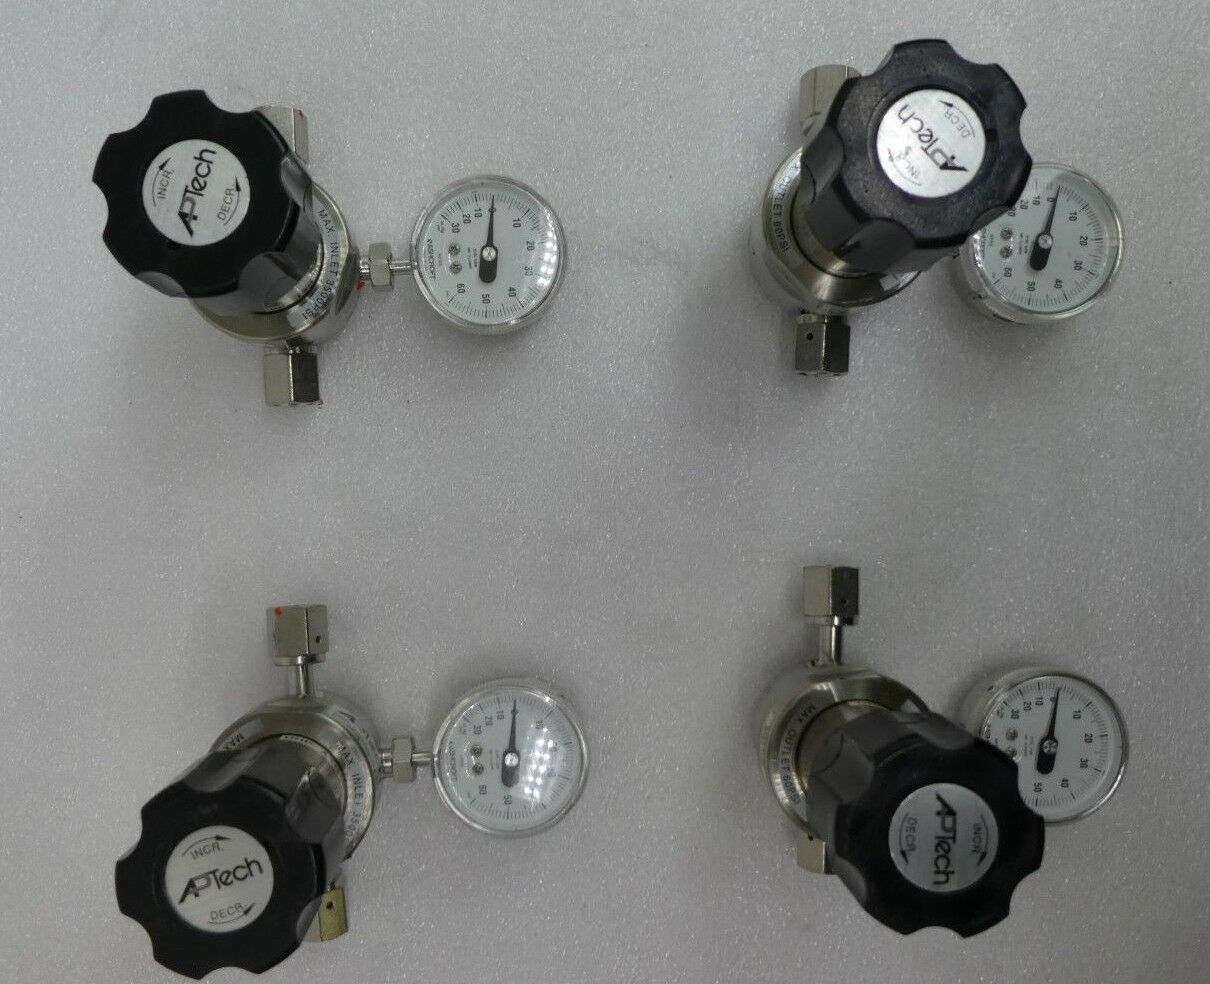 APTech AP1006SM 3PW FV4 FV4 IV4 Single Stage Regulator Valve Lot of 4 Used